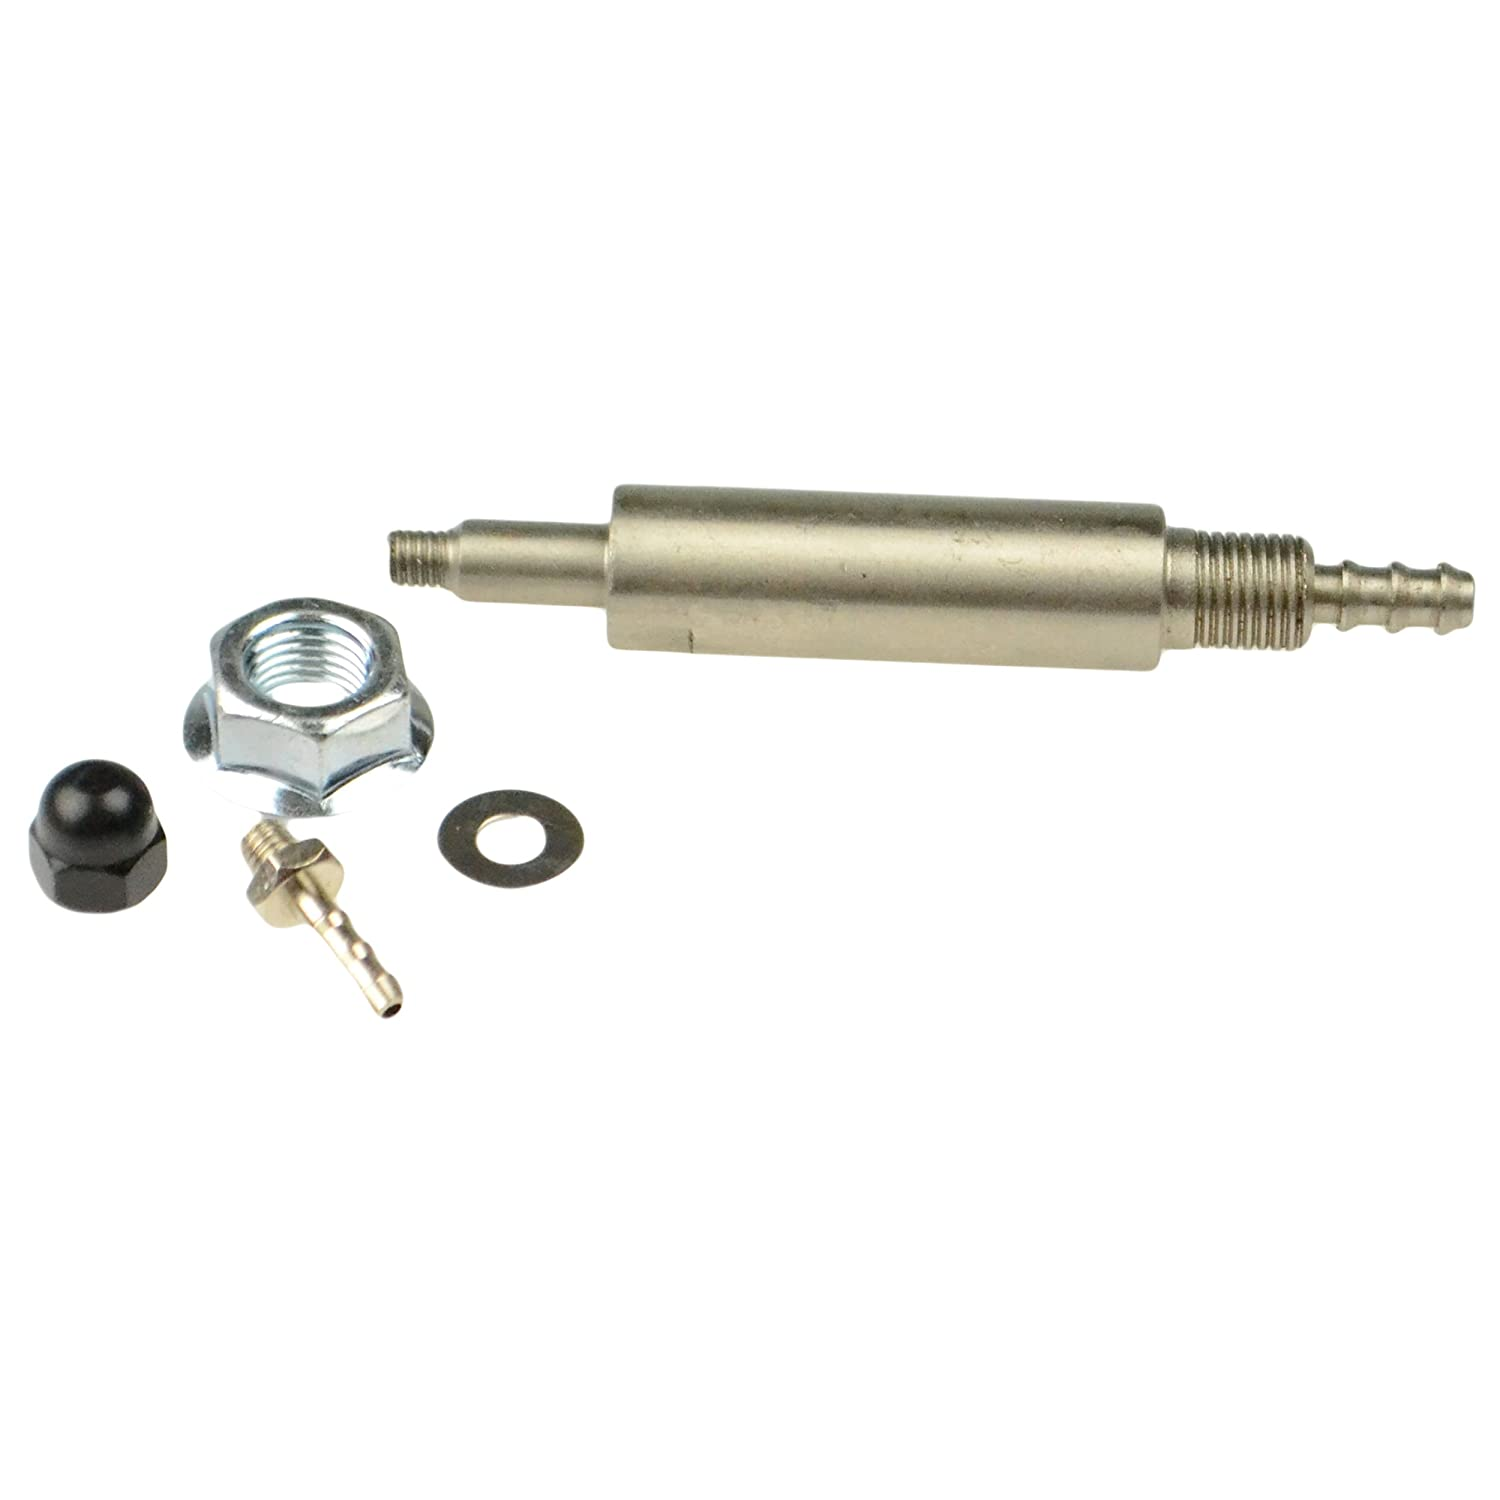 Wexco RV//Auto Stainless Steel Shaft Adapter for Pantograph Wiper Arm